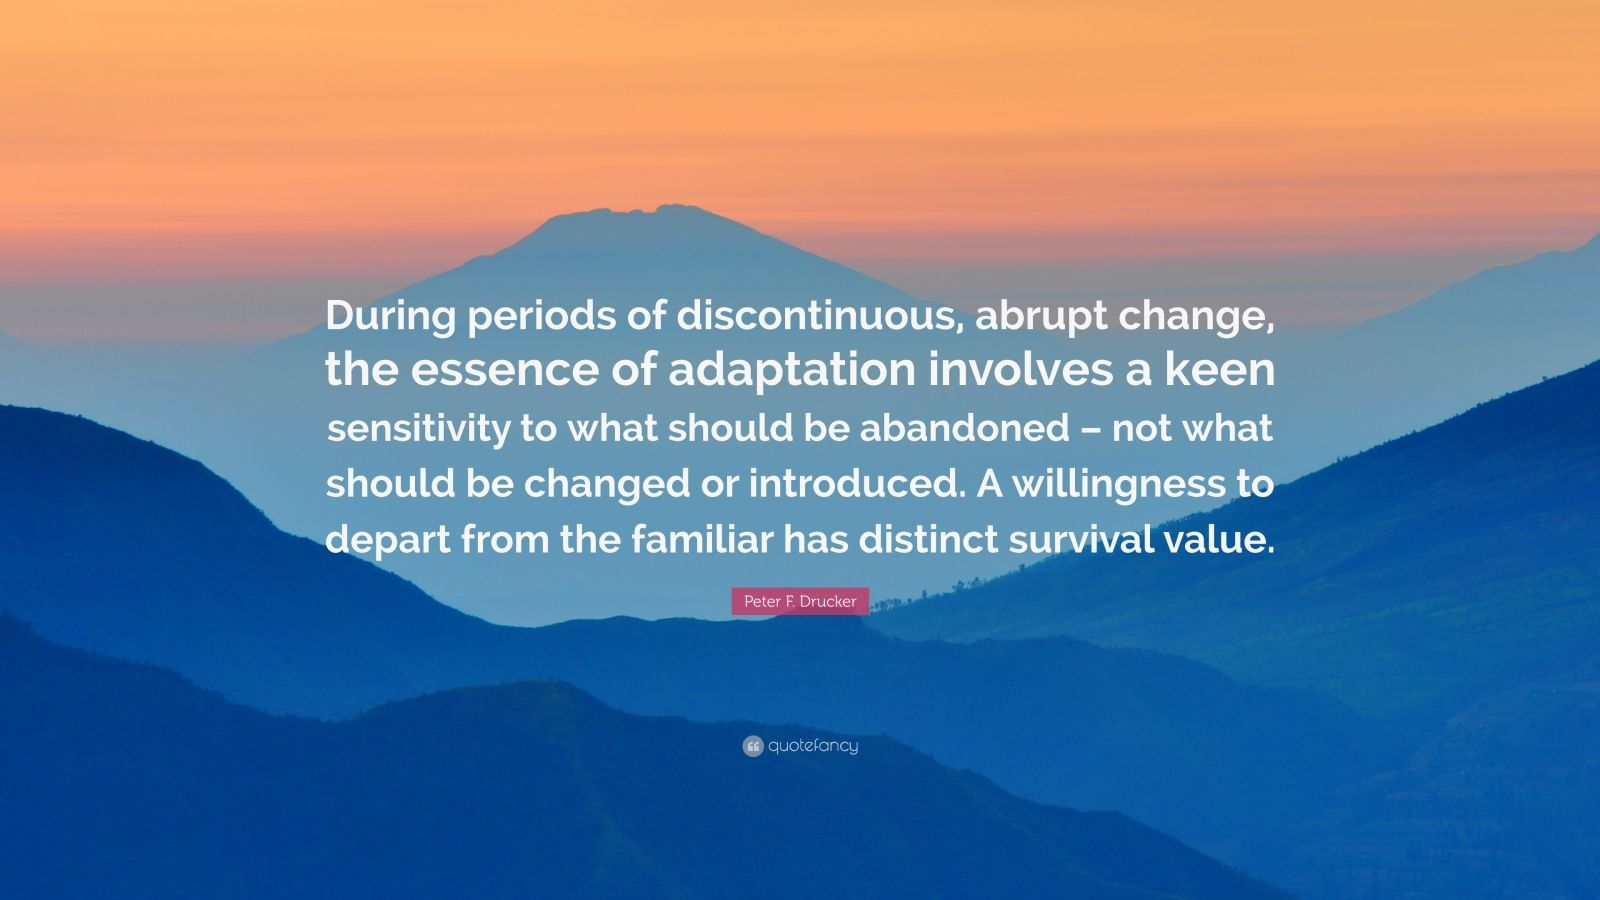 """Peter F. Drucker Quote: """"During periods of discontinuous, abrupt change, the essence of adaptation involves a keen sensitivity to what should be abandoned – not what should be changed or introduced. A willingness to depart from the familiar has distinct survival value."""""""